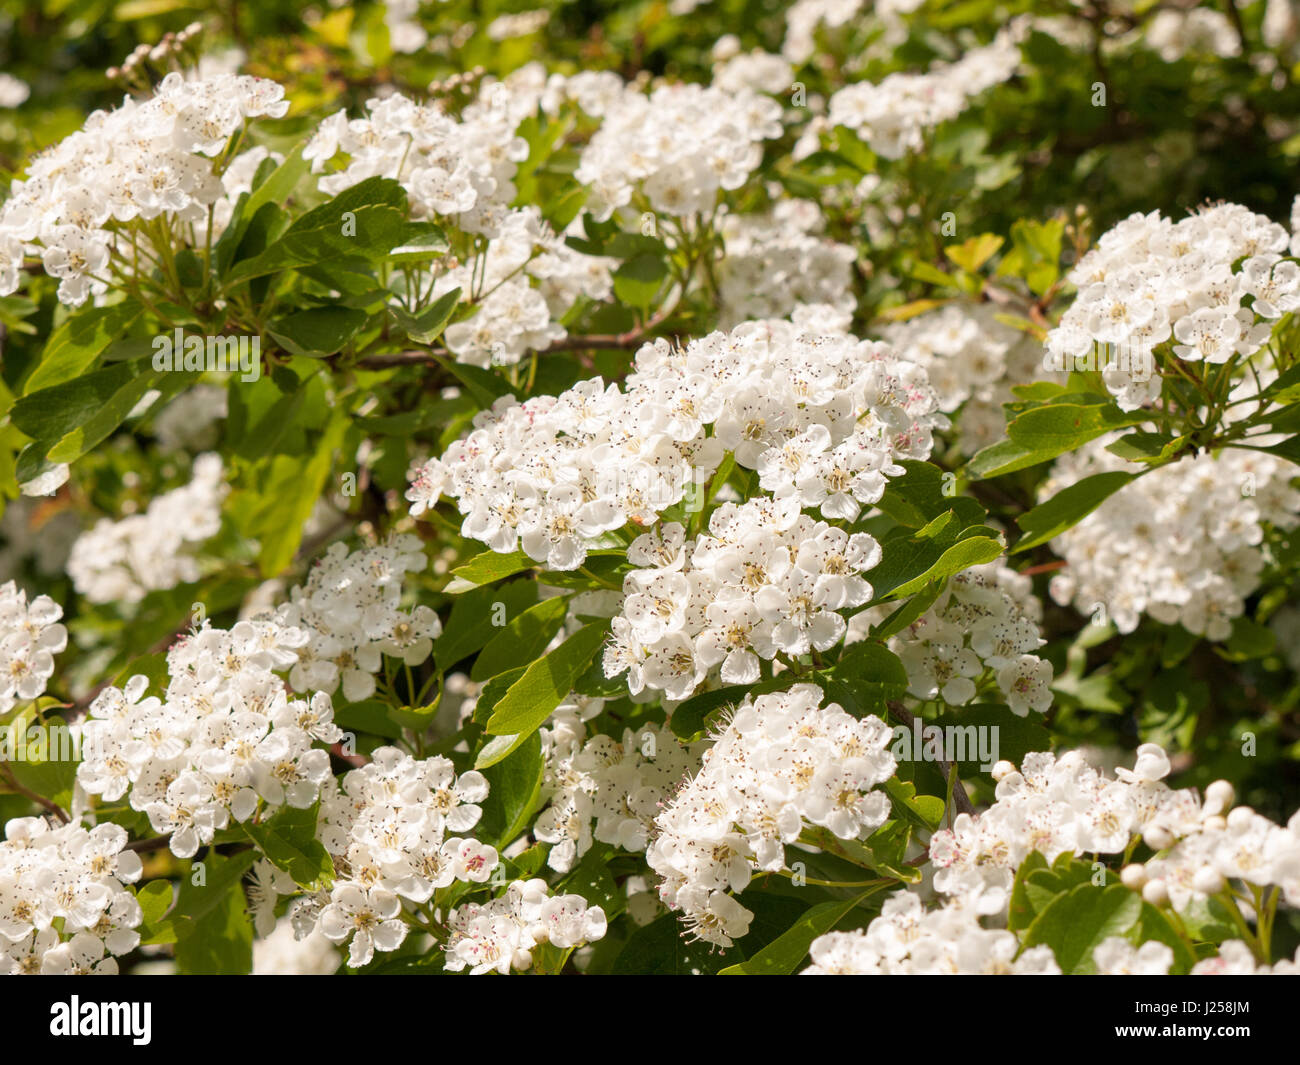 Sweet And Fragrant Shining White Flower Heads On A Tree In Spring